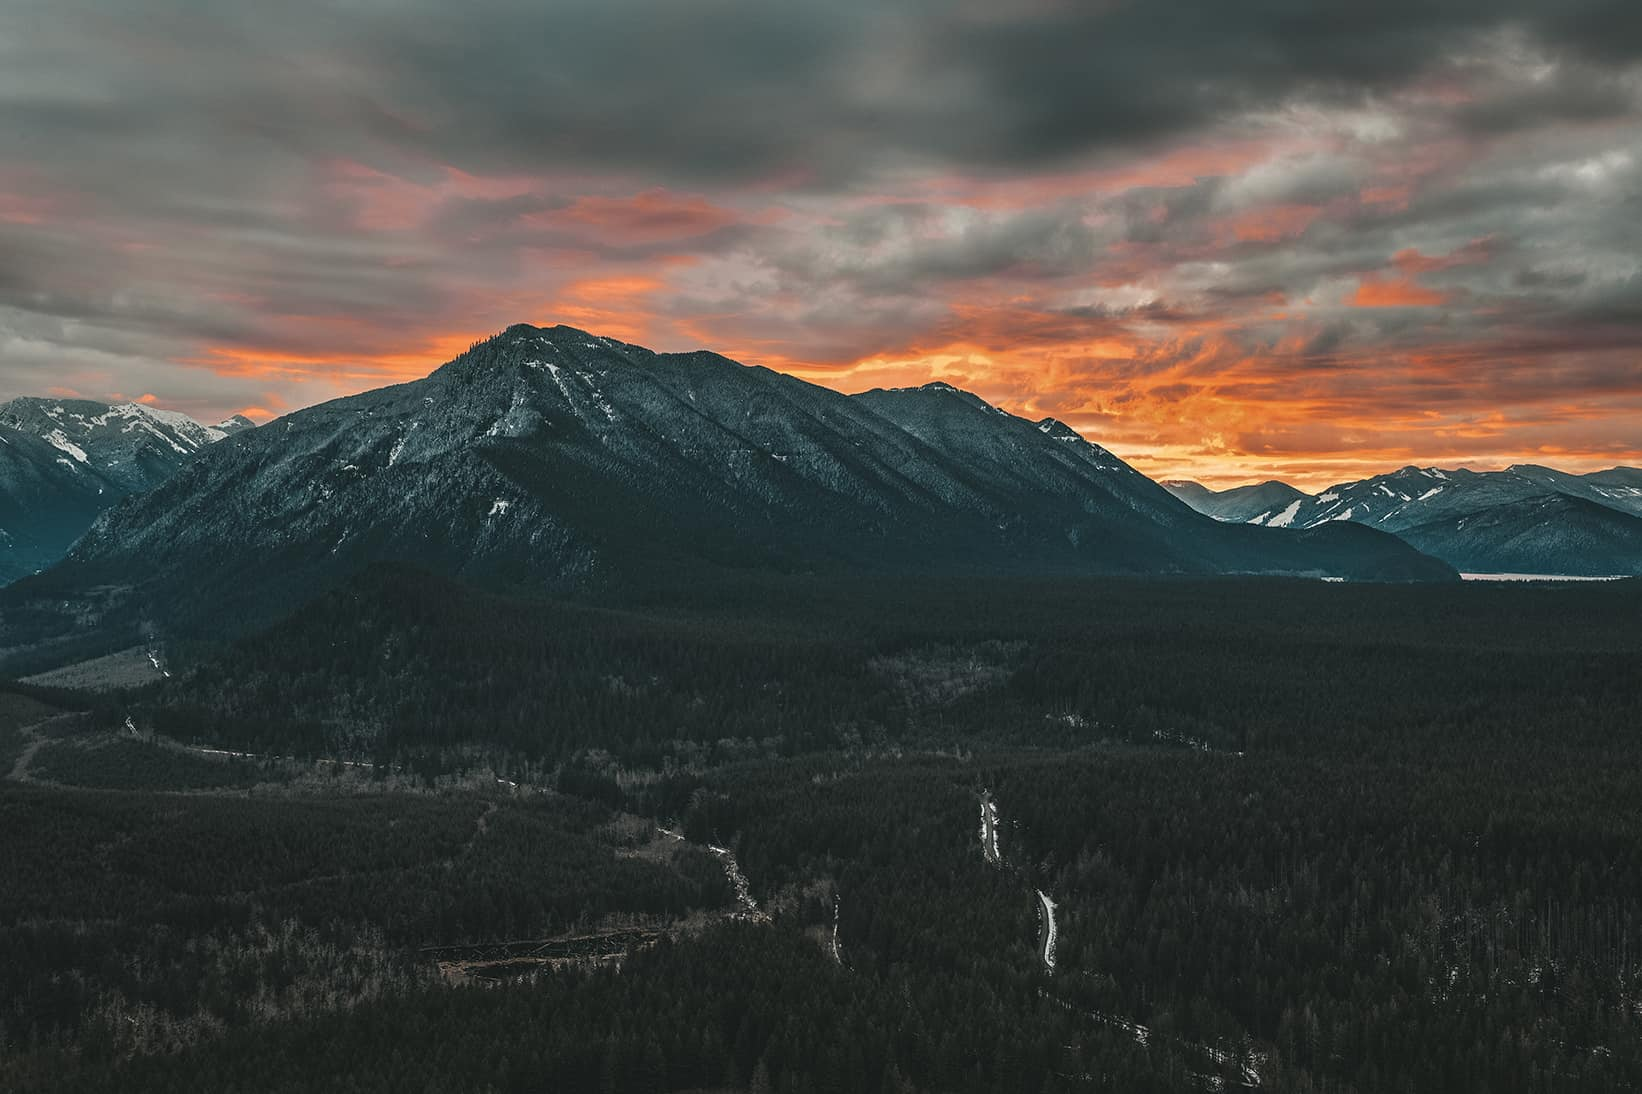 Adobe Lightroom Edited image of a dark mountain with orange fire sunset in the background.